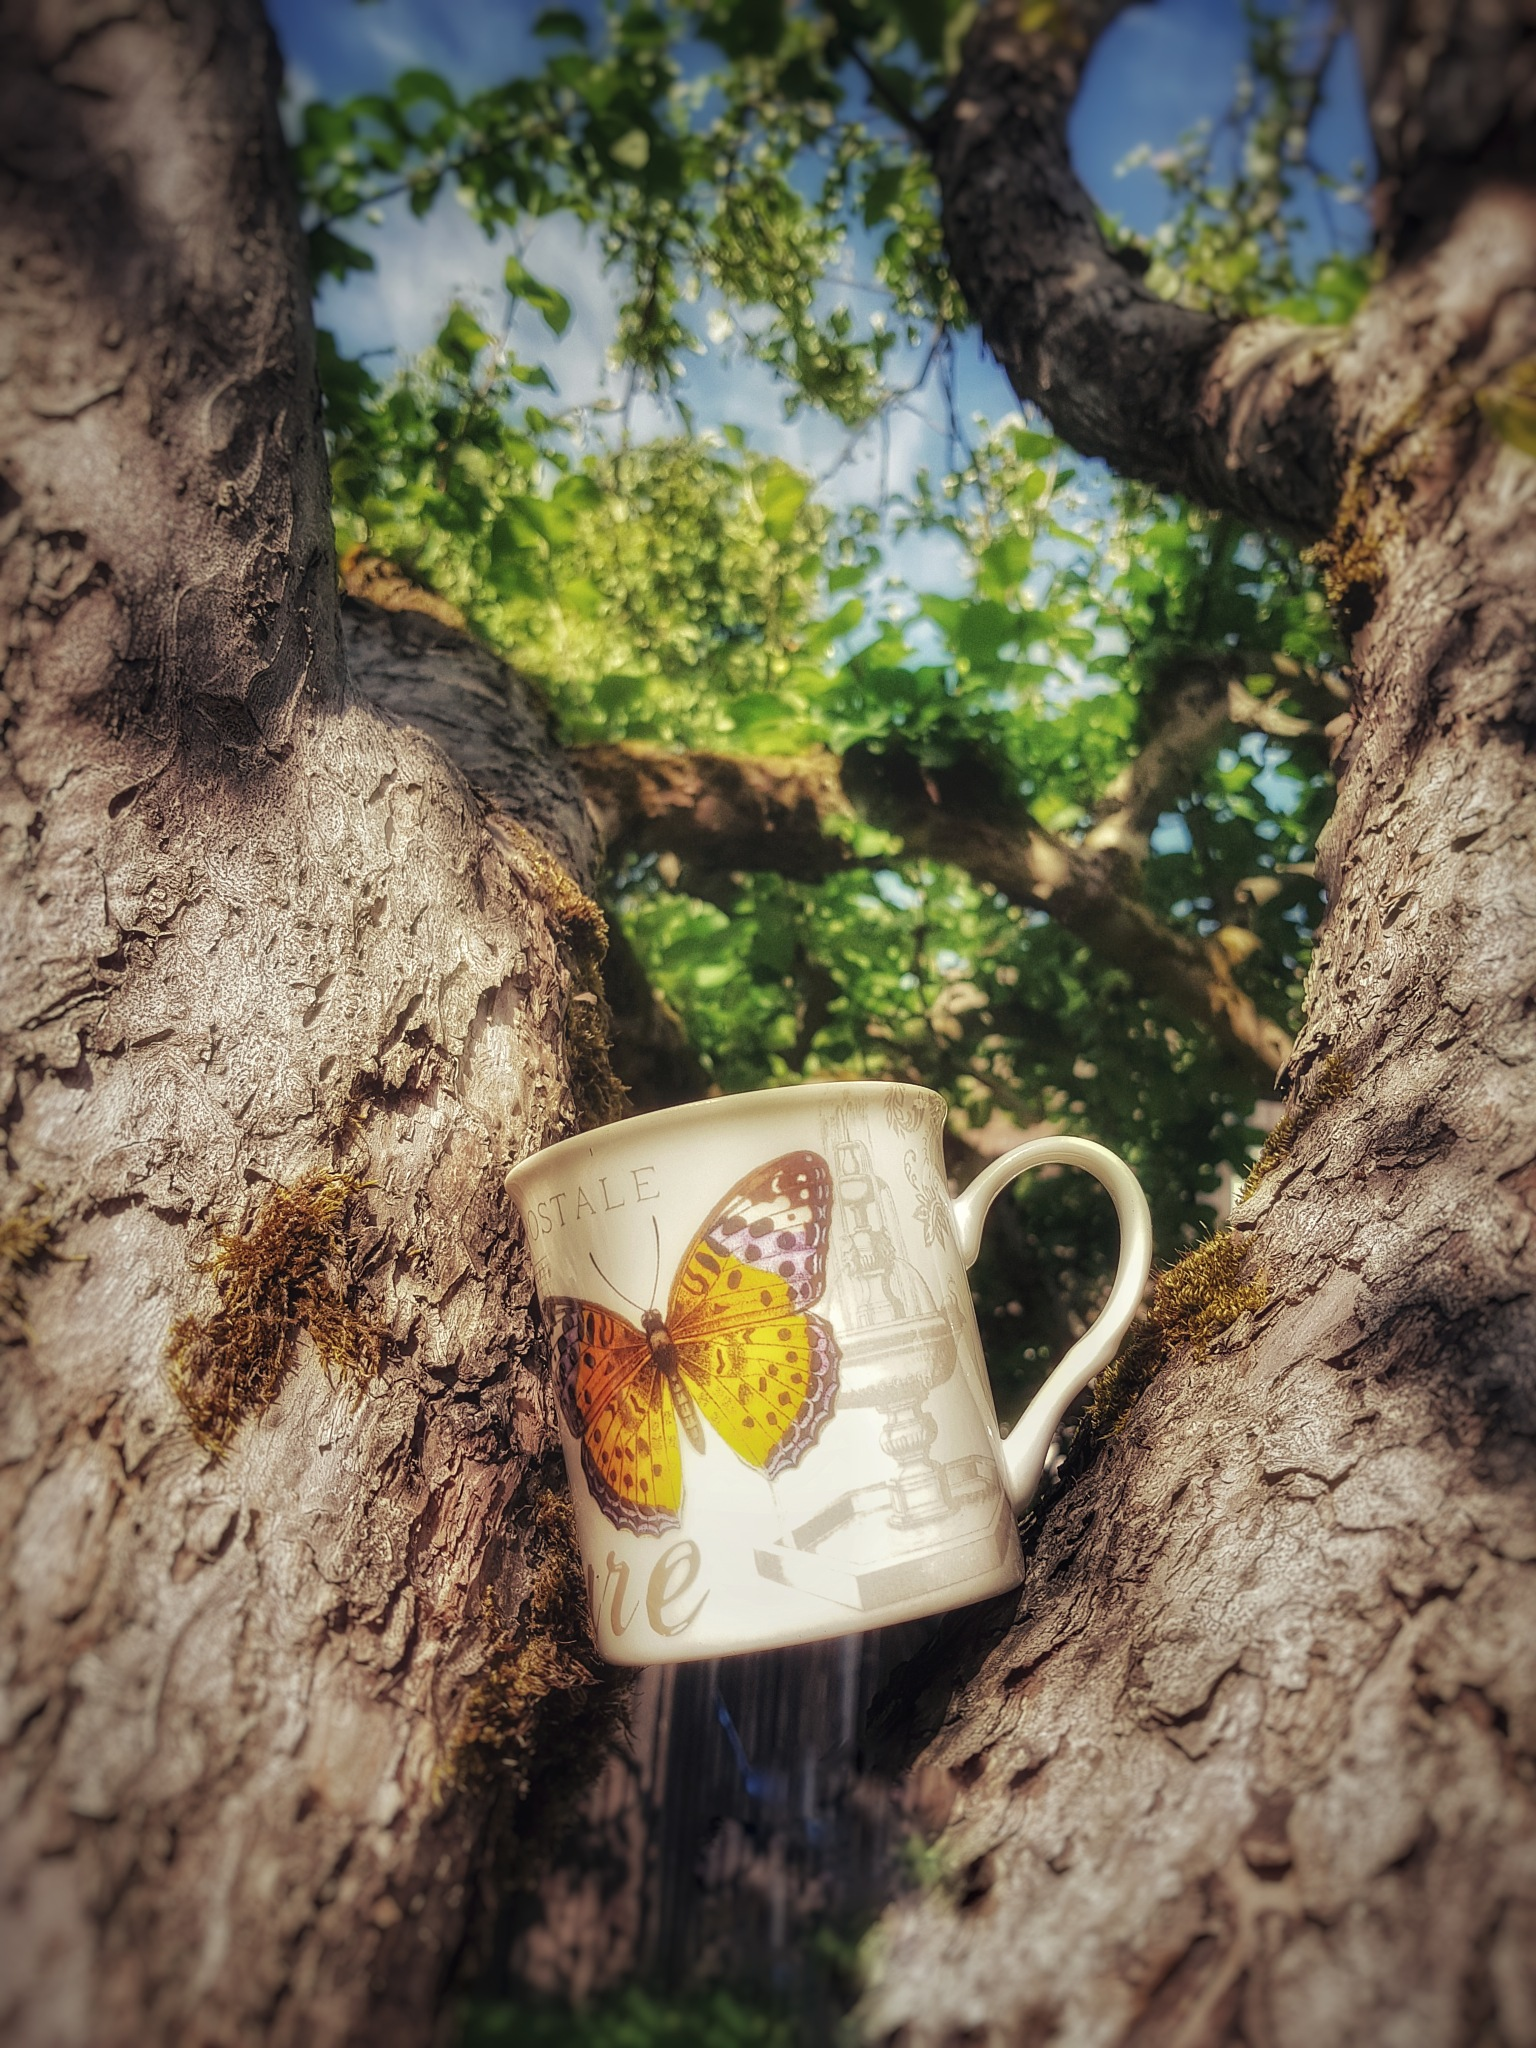 Cup of coffe ☕ by Annica Josefsson